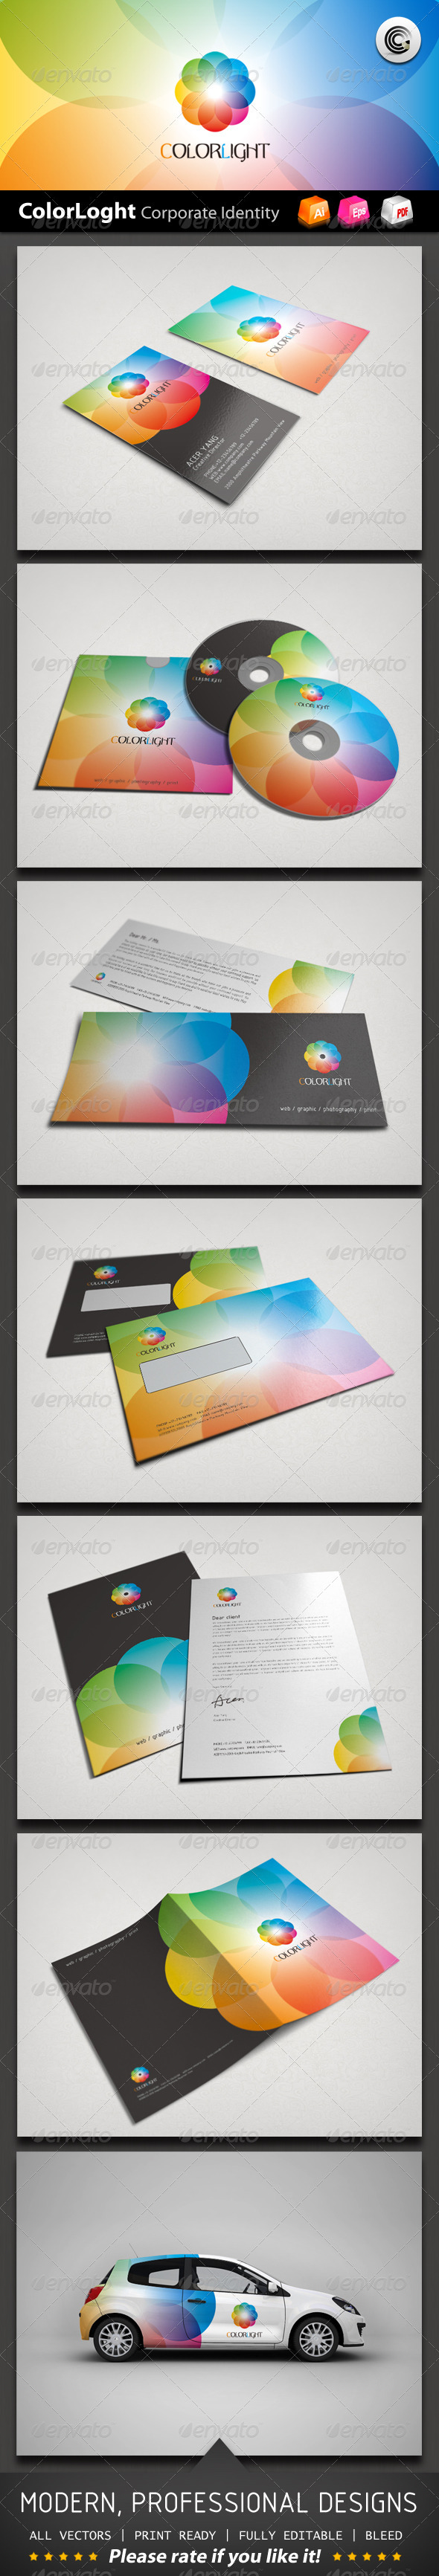 Color Light Corporate Identity  Corporate Identity Colour Light